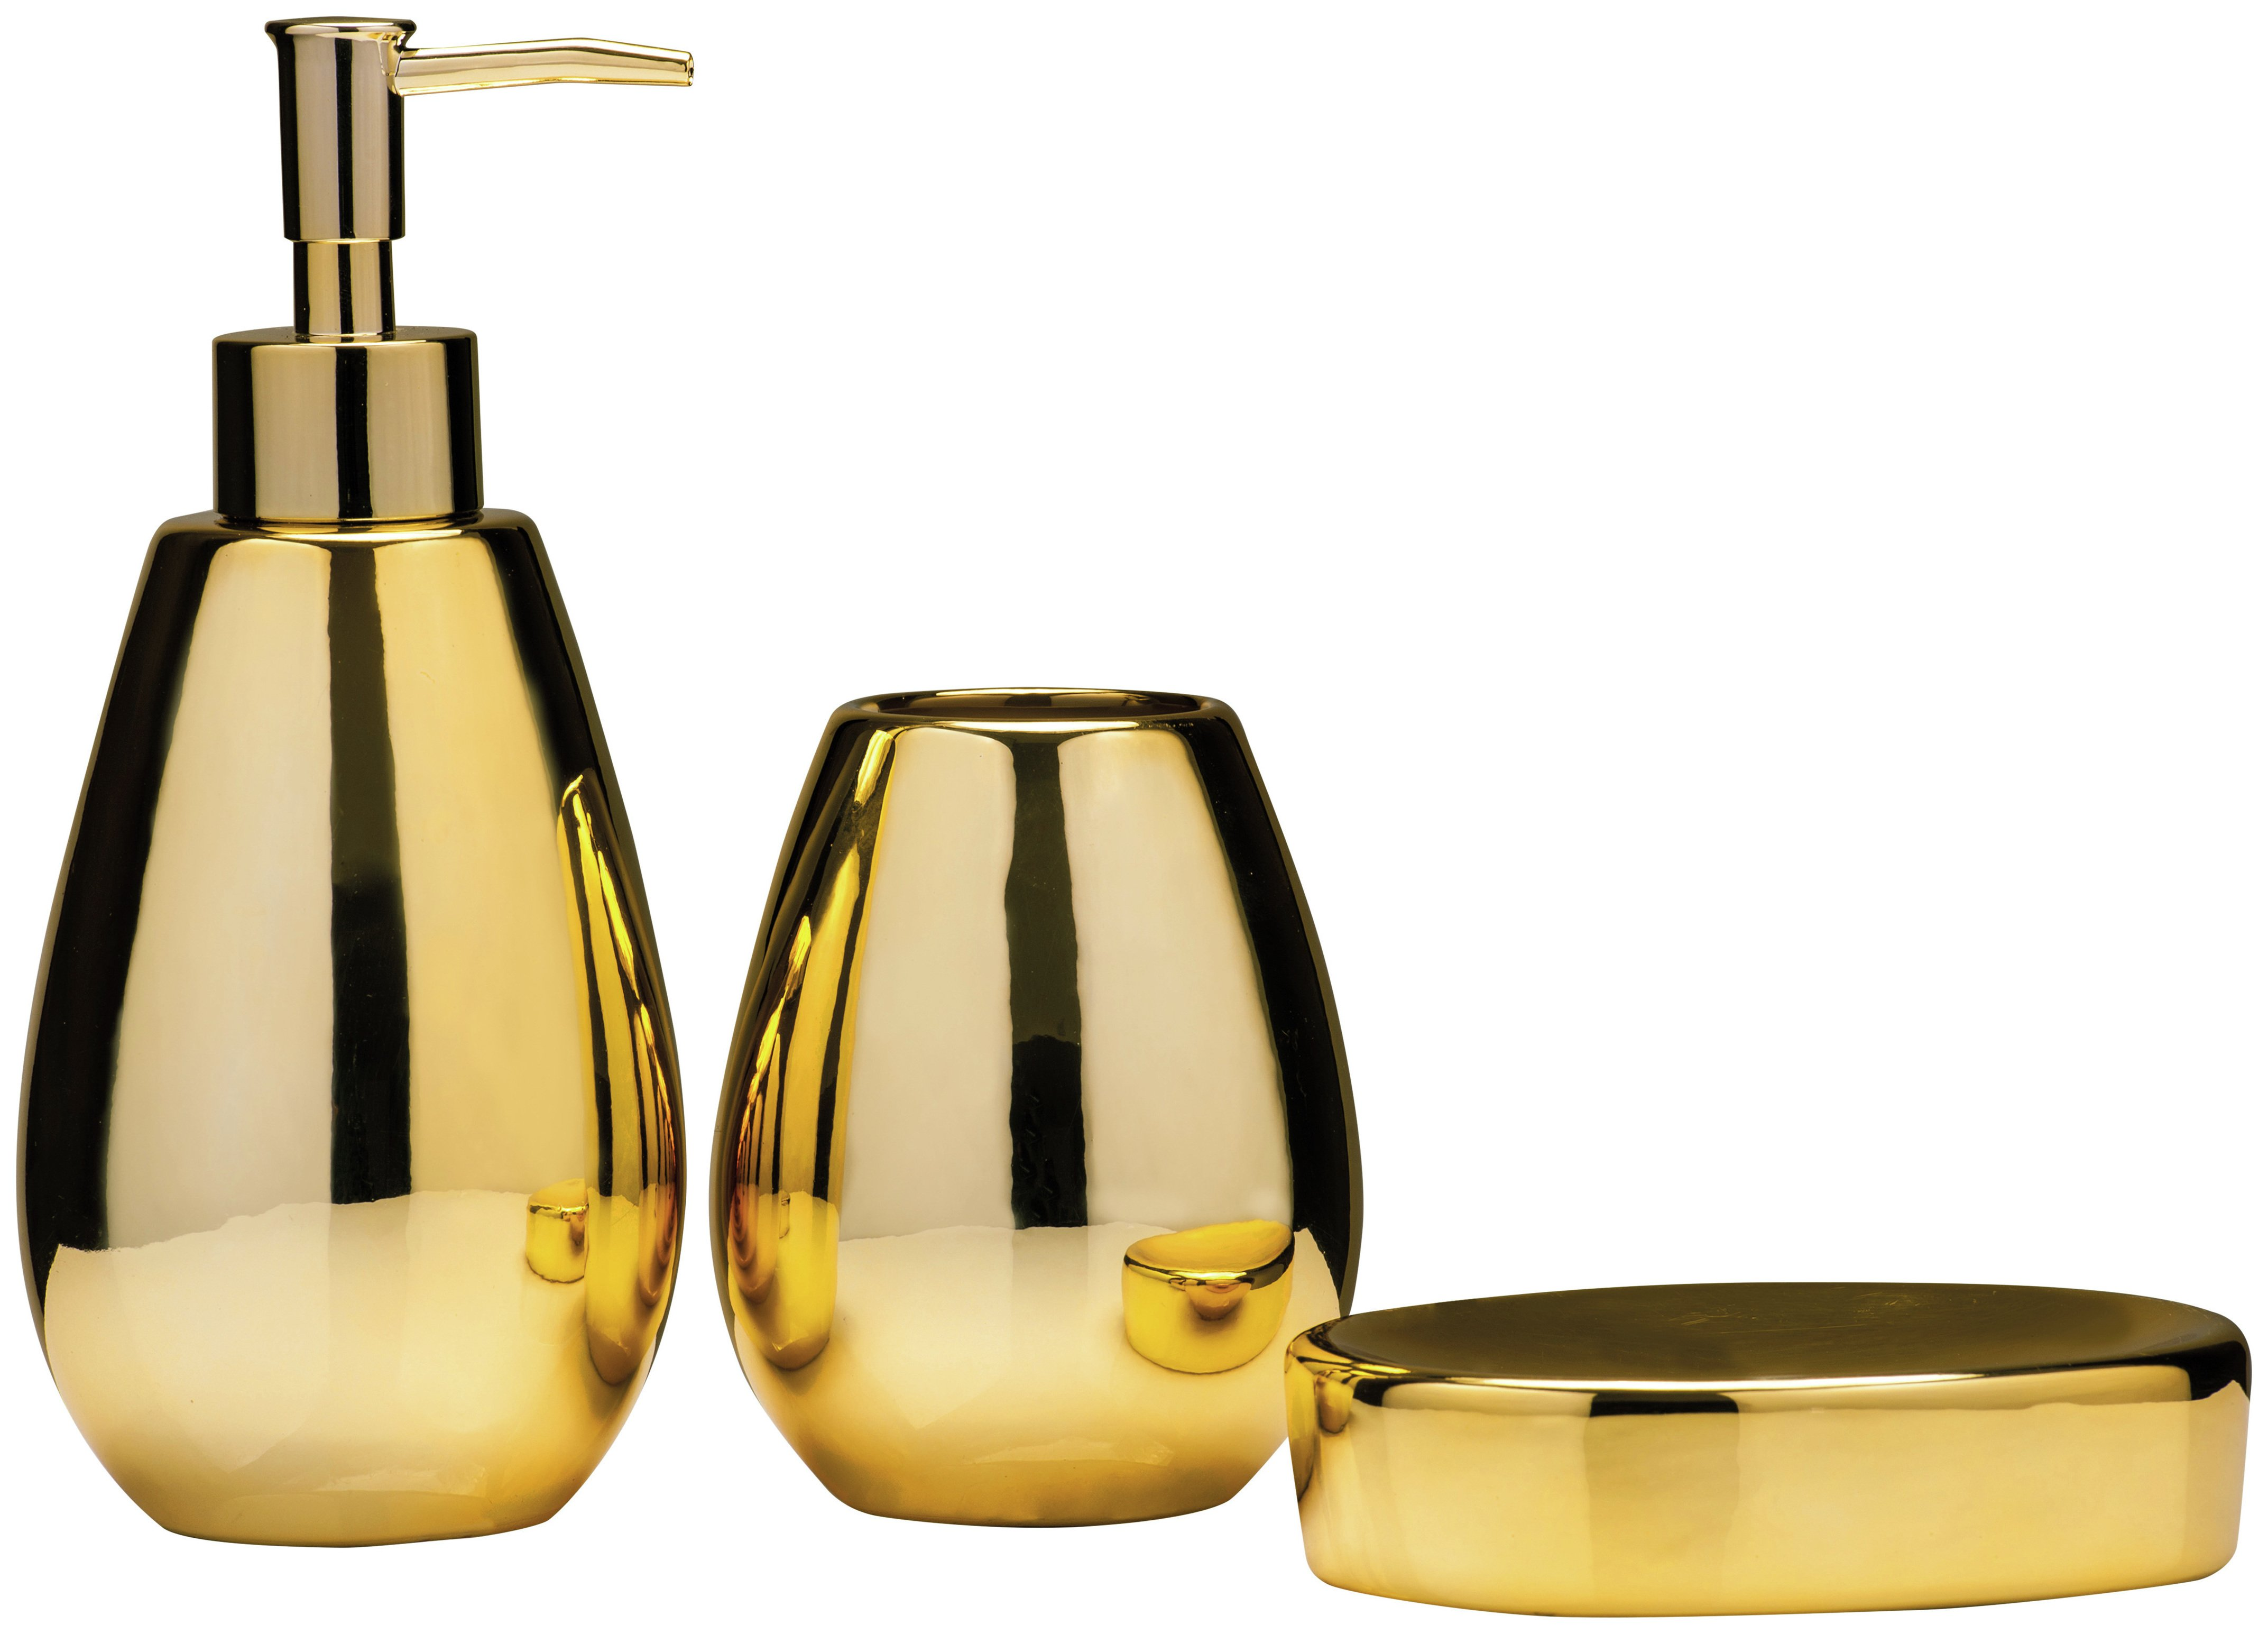 Premier Housewares Magpie 3 Pc Dolomite Bathroom Set - Gold